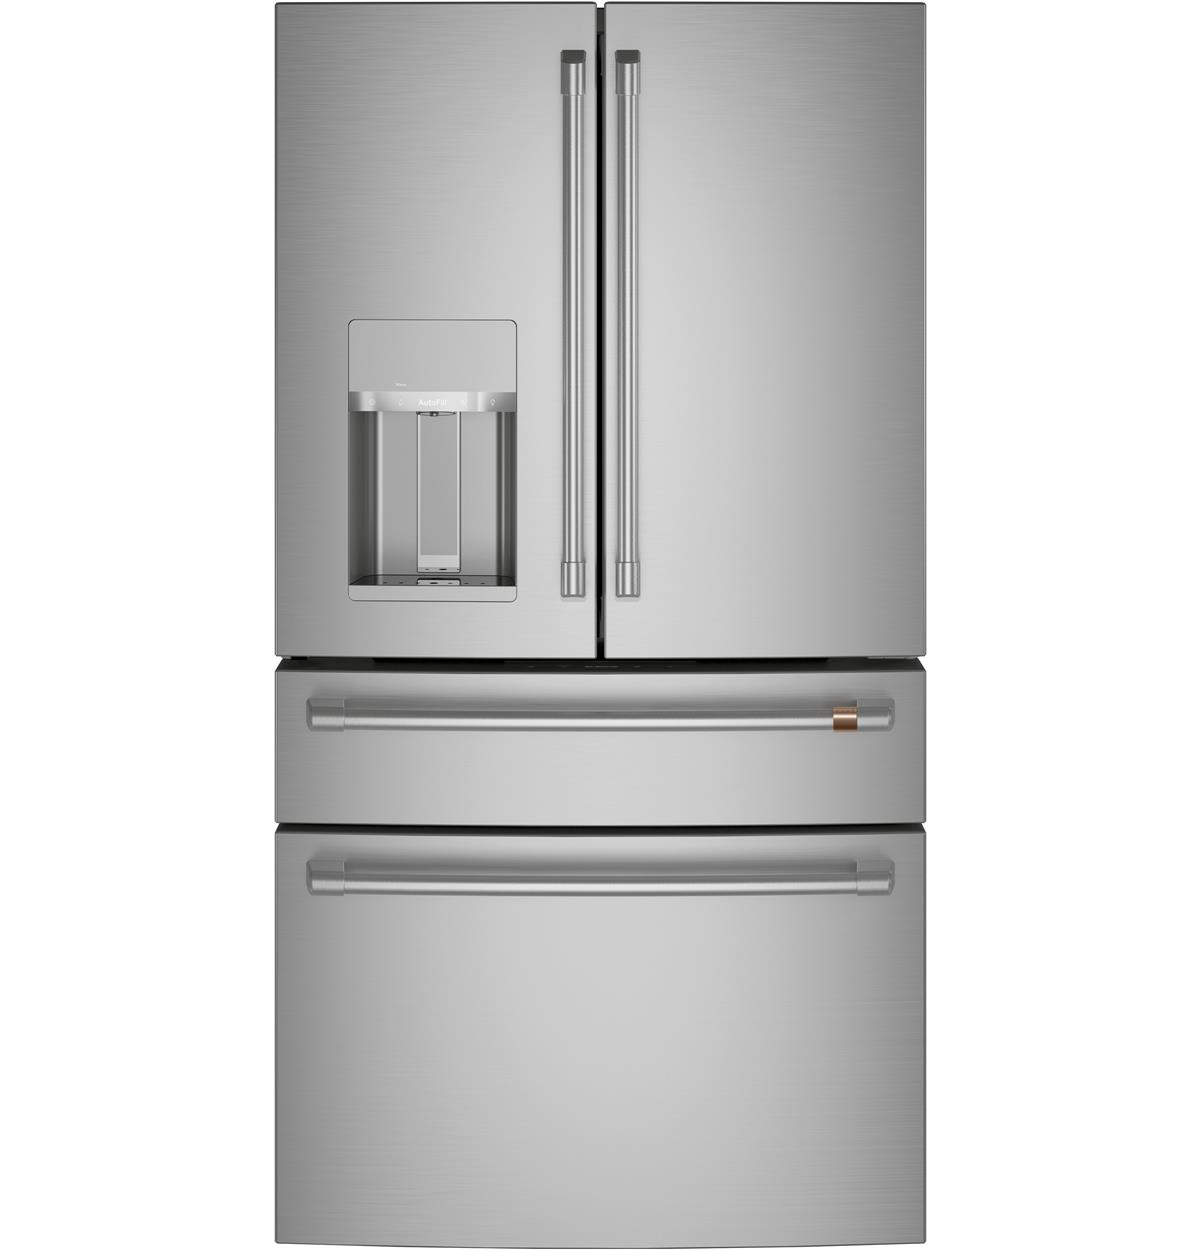 Café™ ENERGY STAR® 27.8 Cu. Ft. Smart 4-Door French-Door Refrigerator